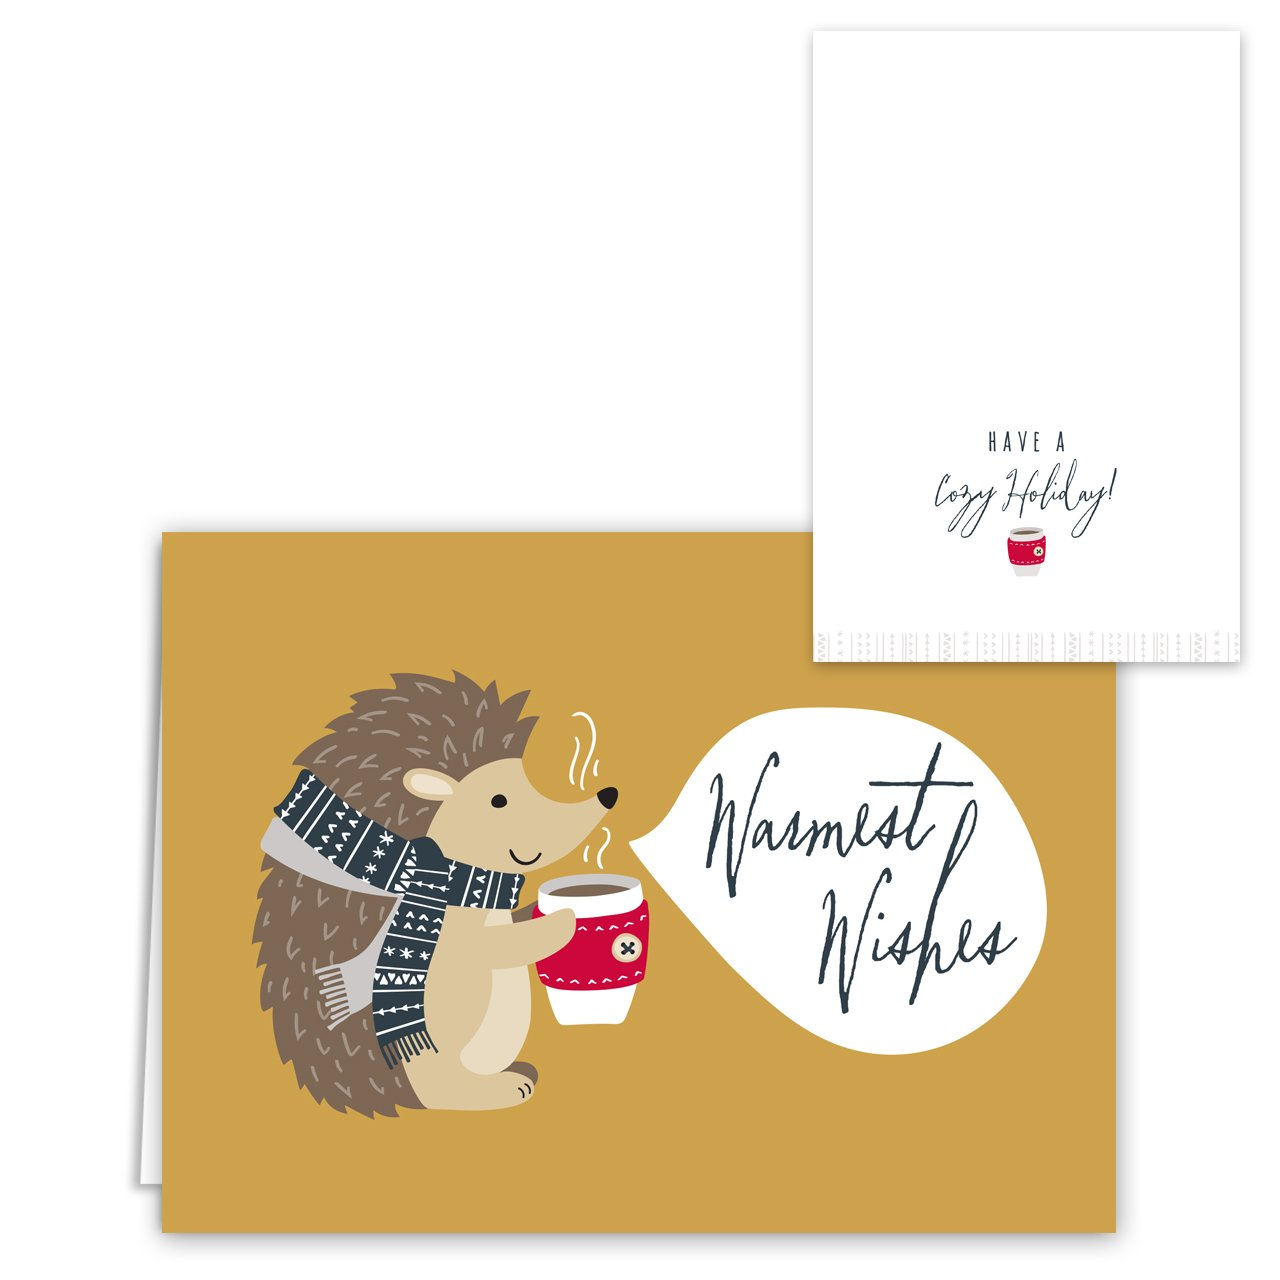 Woodland Animals Holiday Card Pack - Set of 36 cards - 6 of each design, versed inside with envelopes